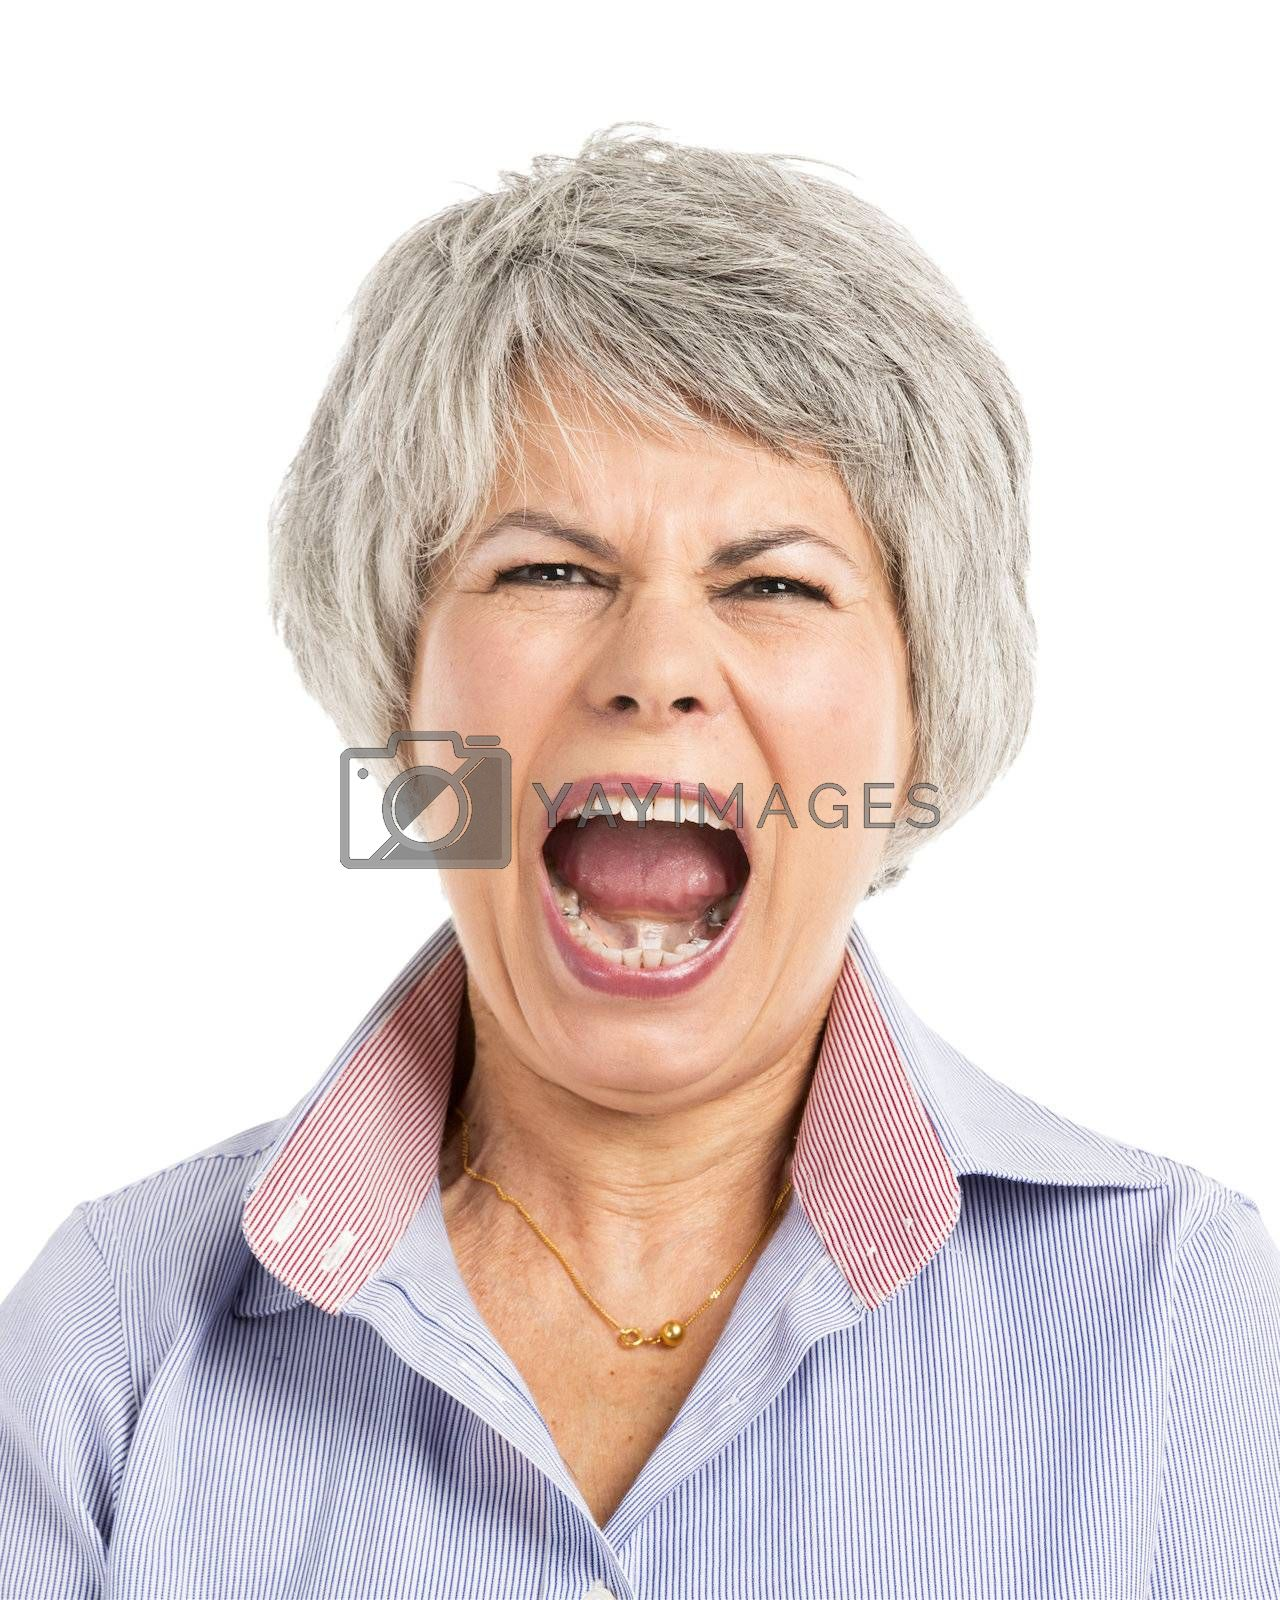 Royalty free image of Yelling Expression by Iko